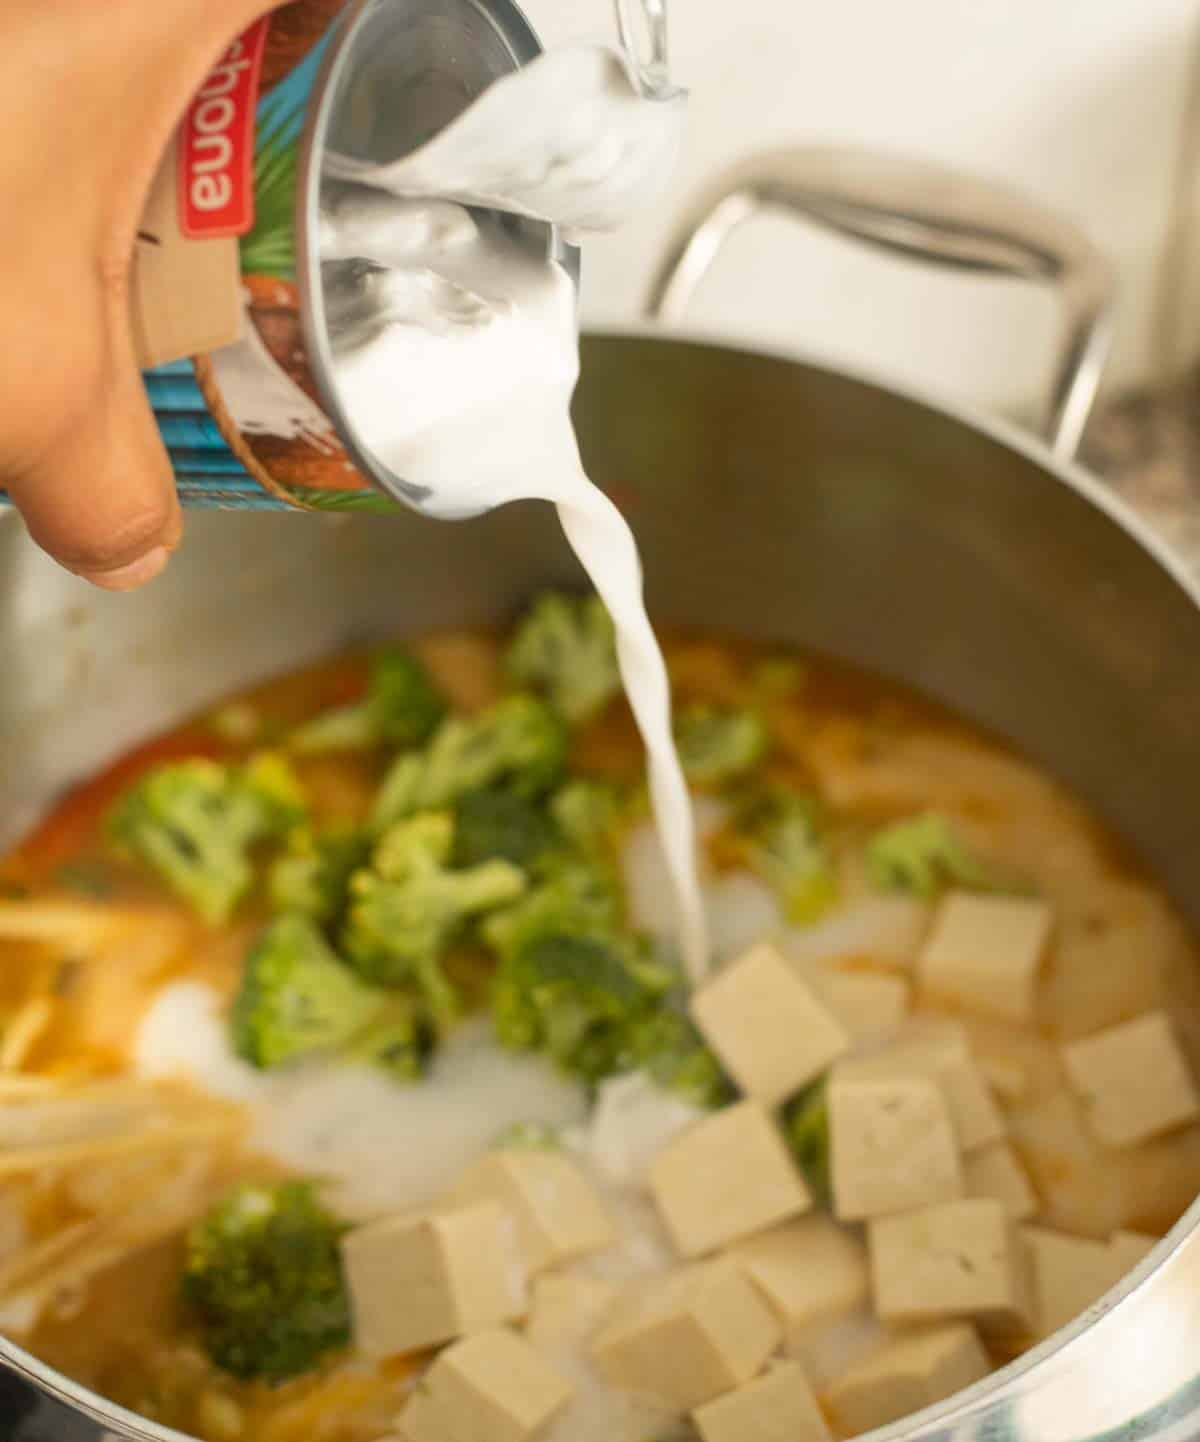 A hand pouring a can of coconut milk into a pot of noodle soup